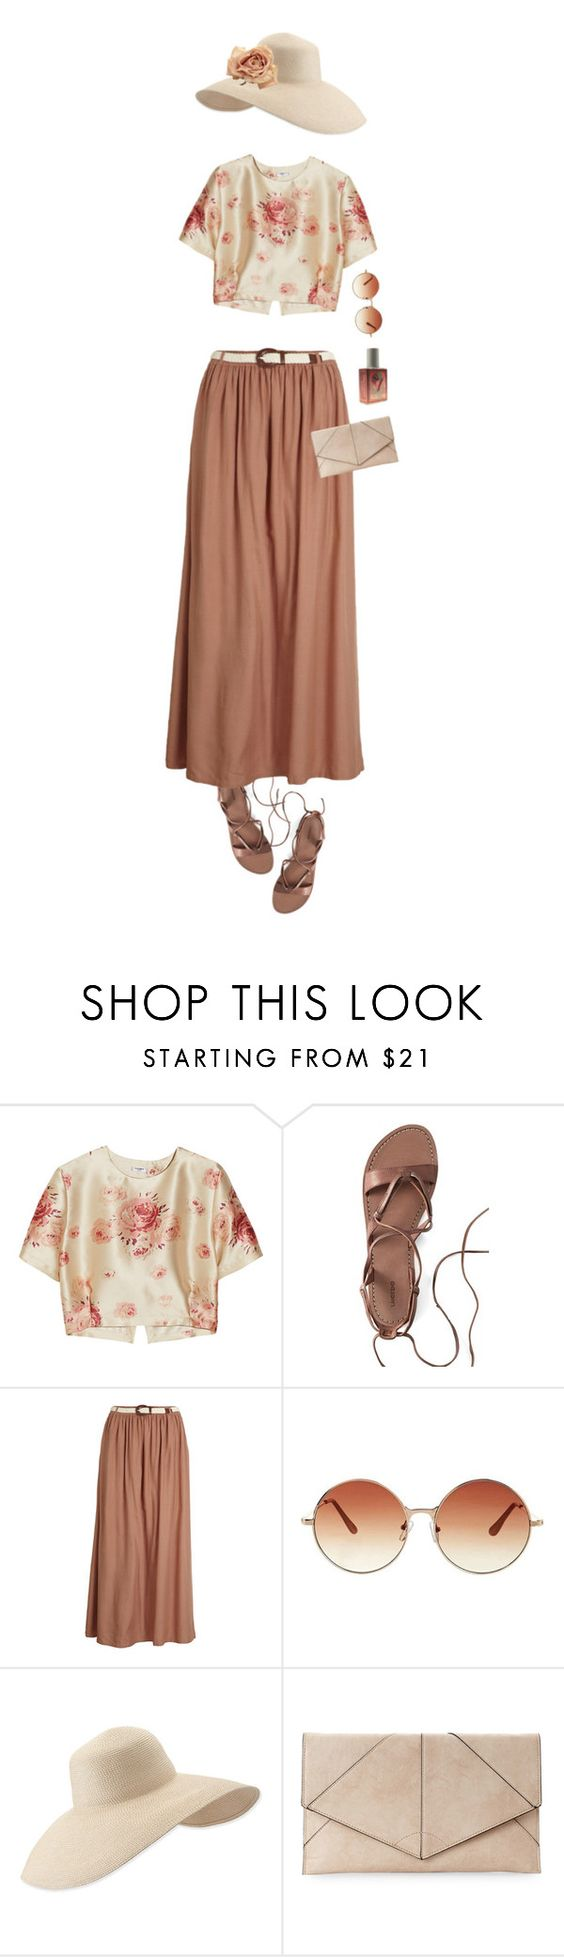 """""""Yesterday Haze"""" by ladomna ❤ liked on Polyvore featuring Vilshenko, Canvas by Lands' End, Object Collectors Item, Topshop, Eric Javits, Urban Expressions and Haze"""